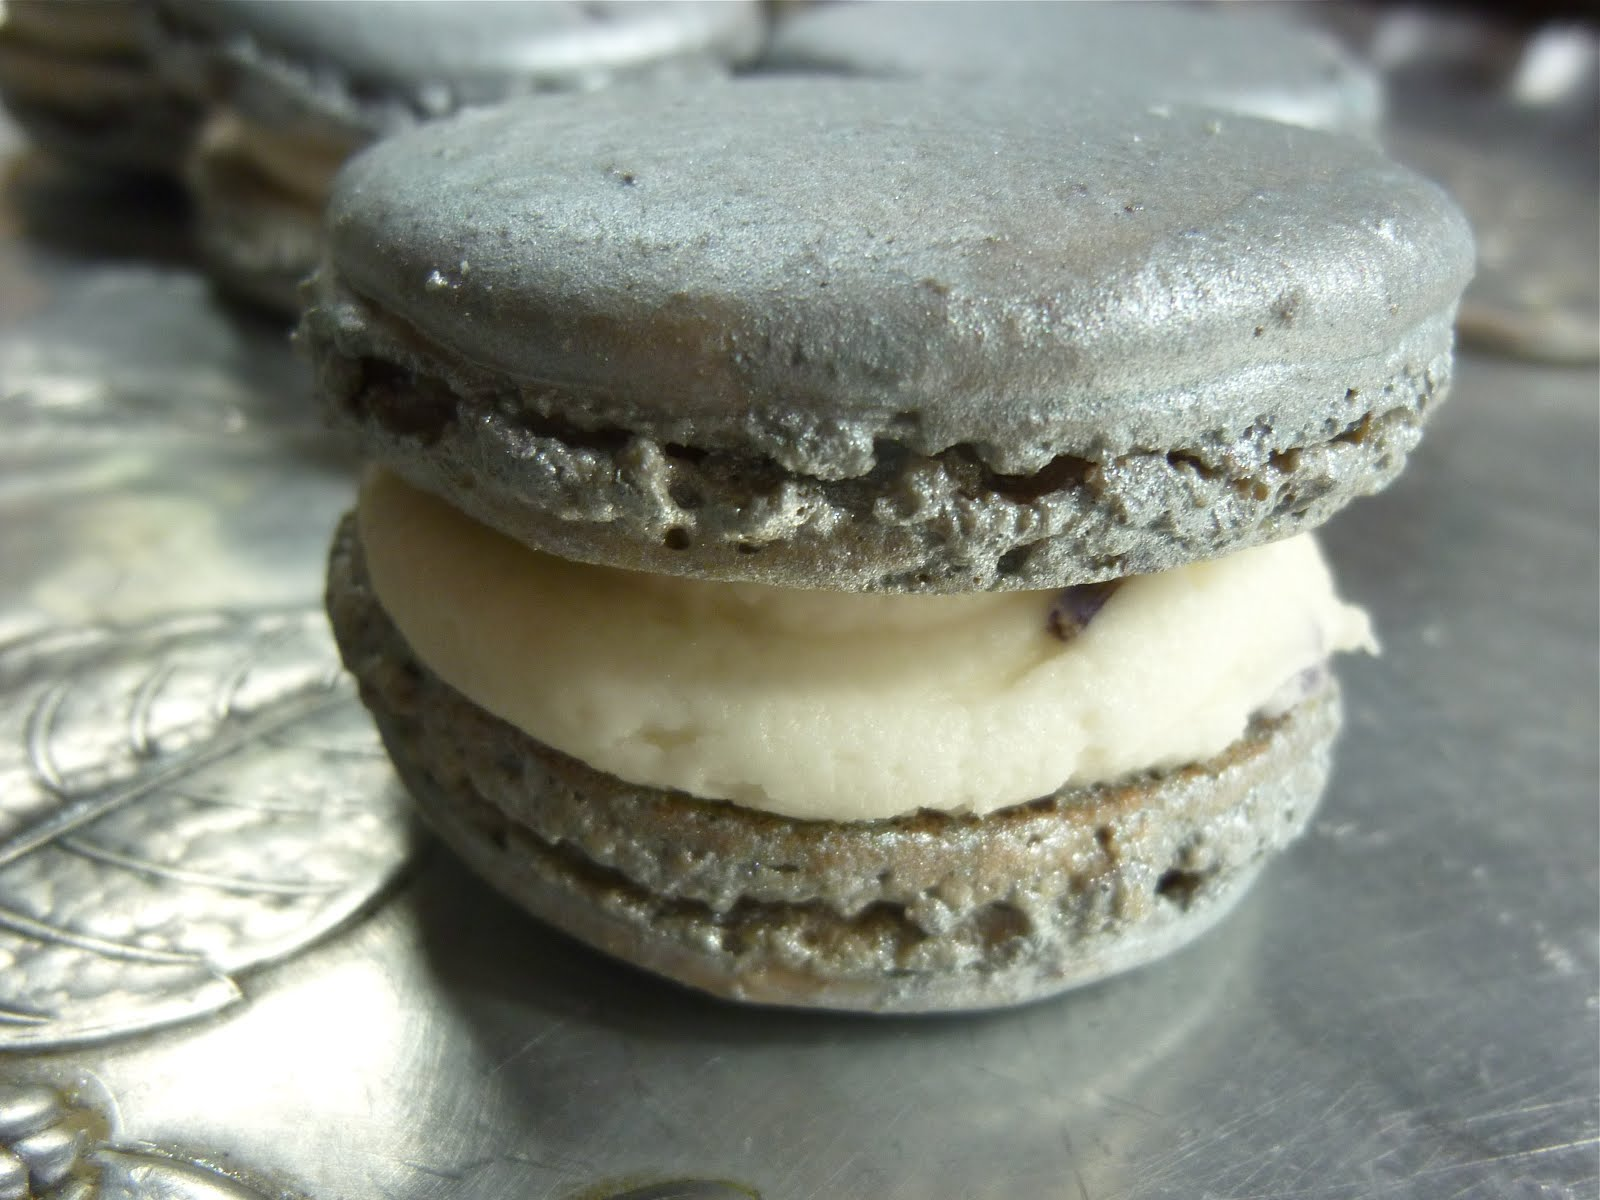 Allspice Cashew French Macarons with Honey Buttercream Filling